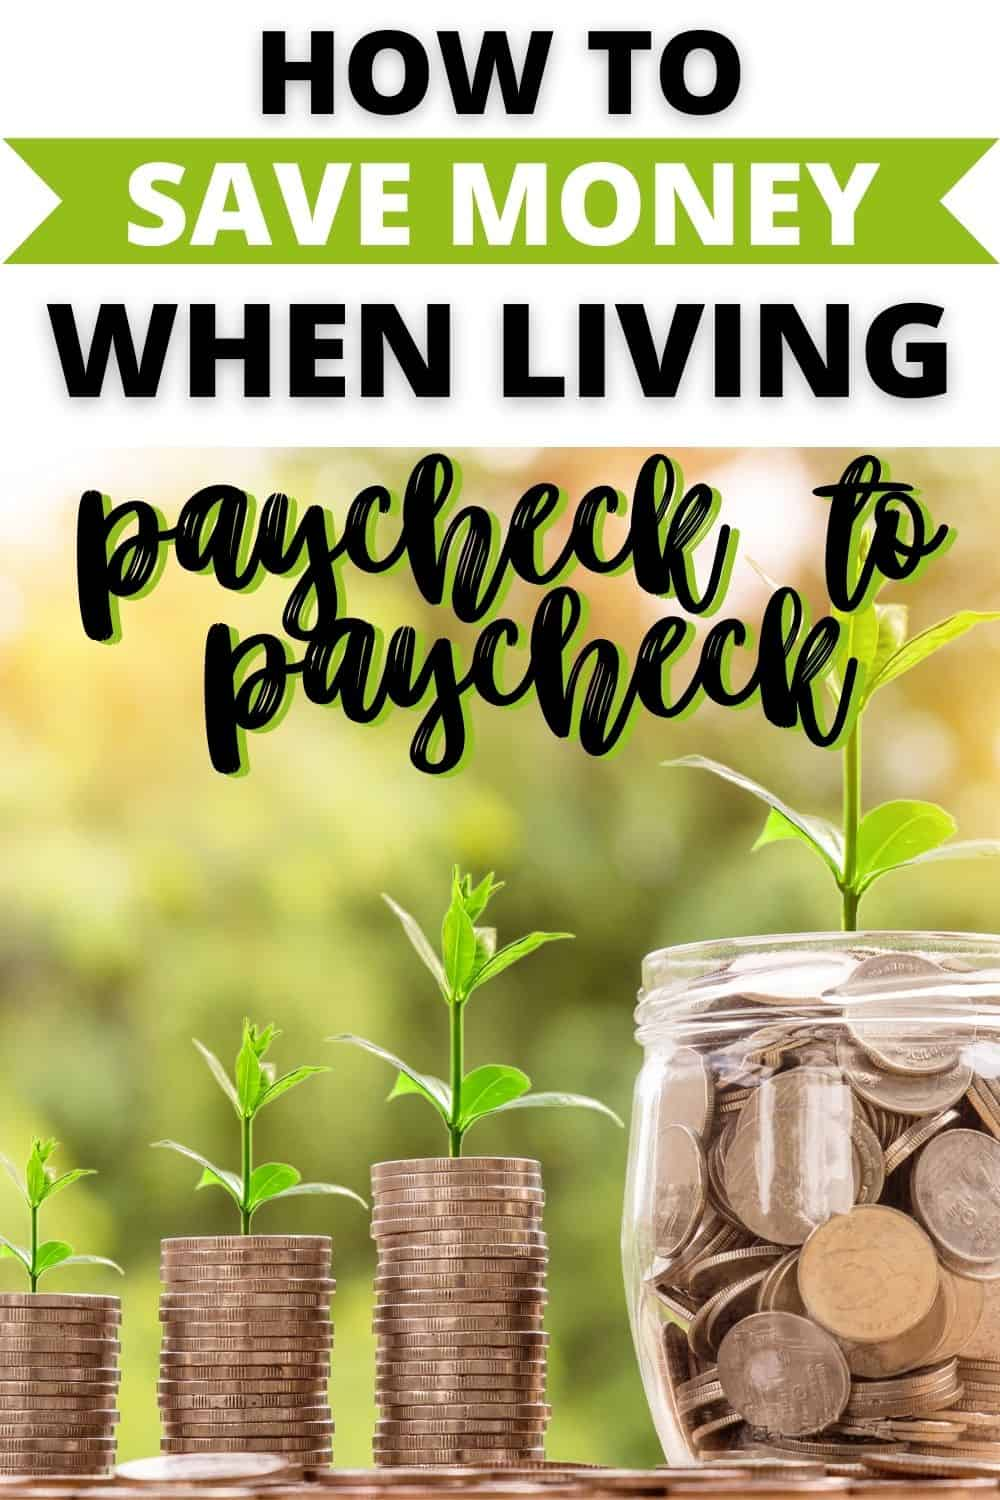 how to save money when living paycheck to paycheck